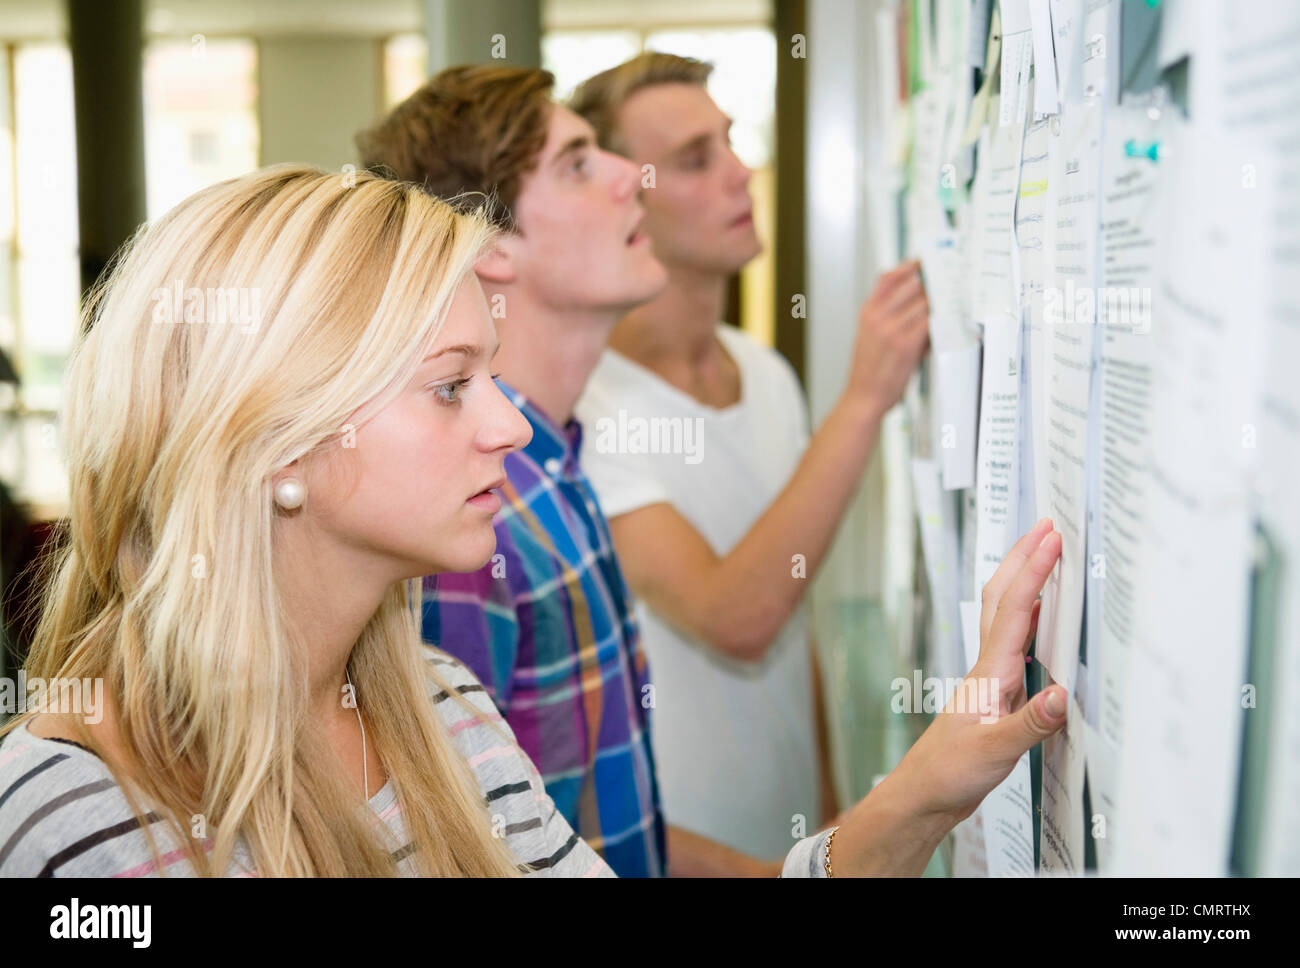 Three students standing by notice board - Stock Image